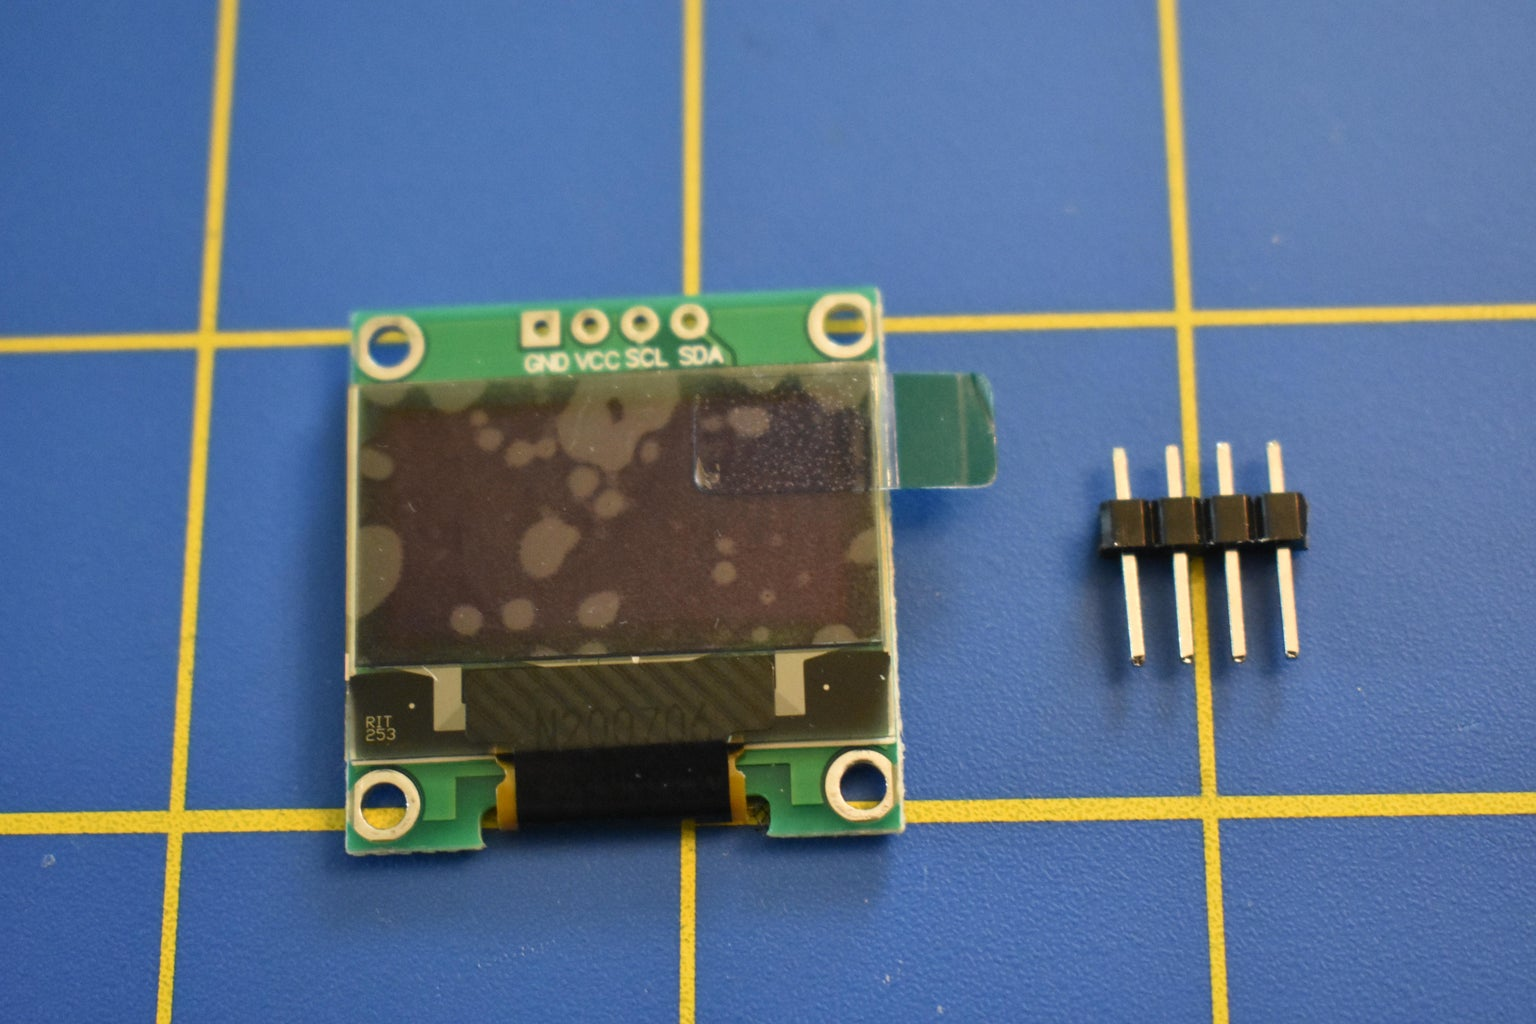 Component Selection - OLED Display